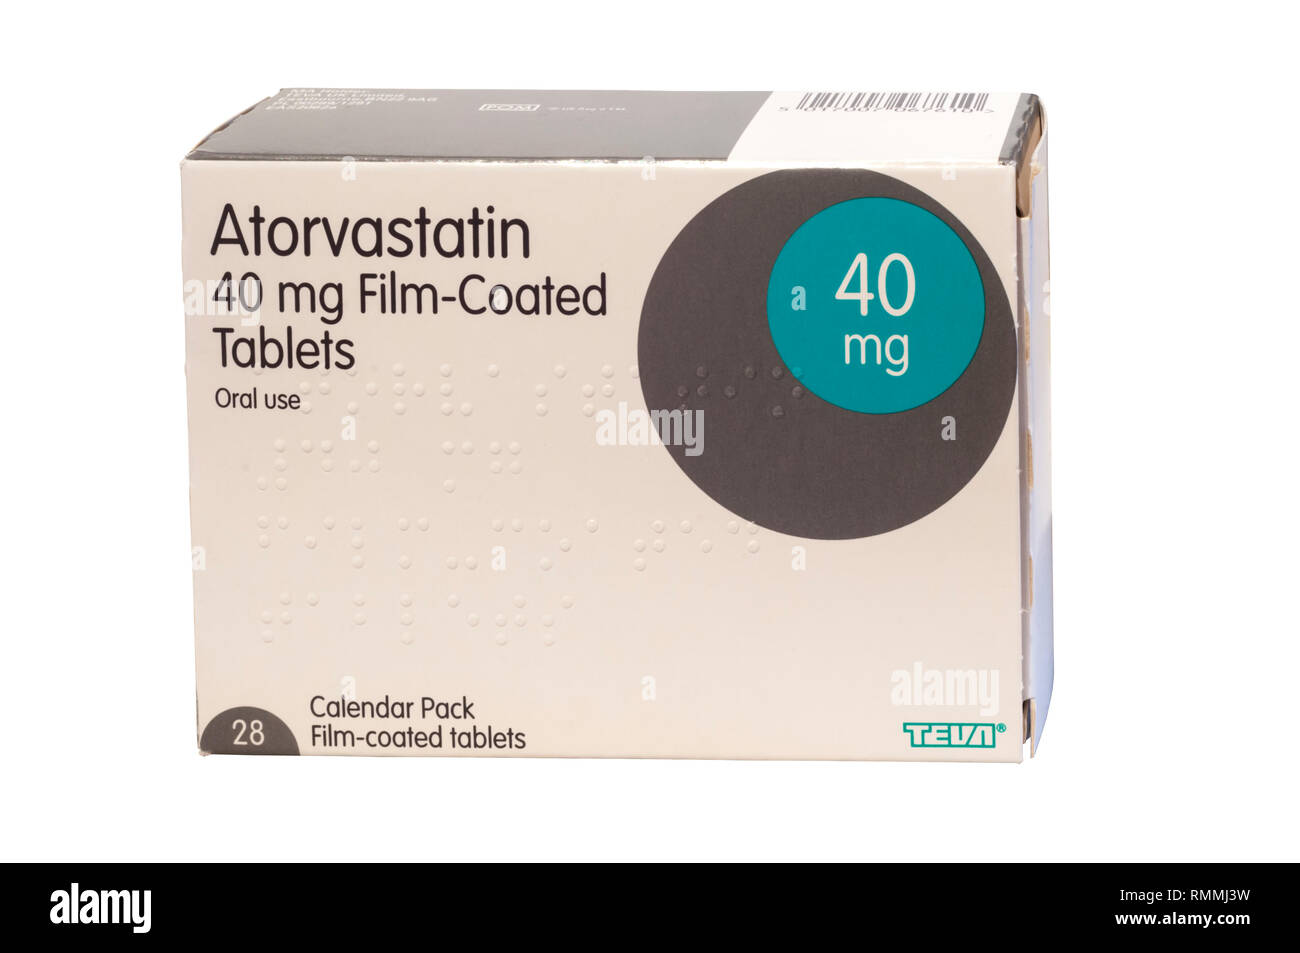 A packet of Atorvastatin tablets, a statin medication used to prevent cardiovascular disease and treat abnormal lipid levels. - Stock Image